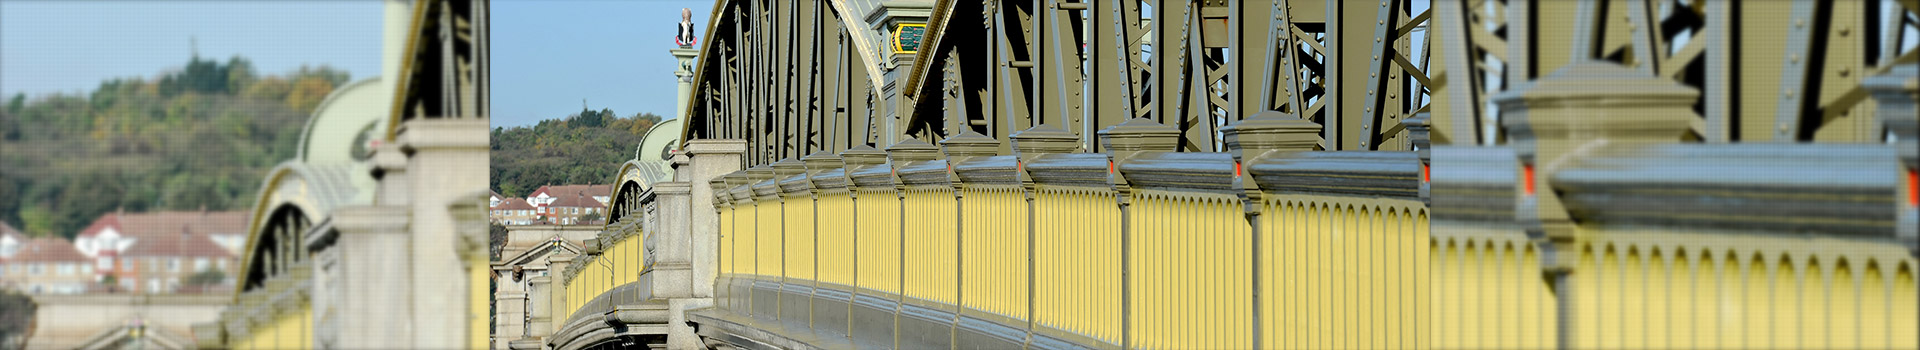 Bridge_Close_Up_Banner